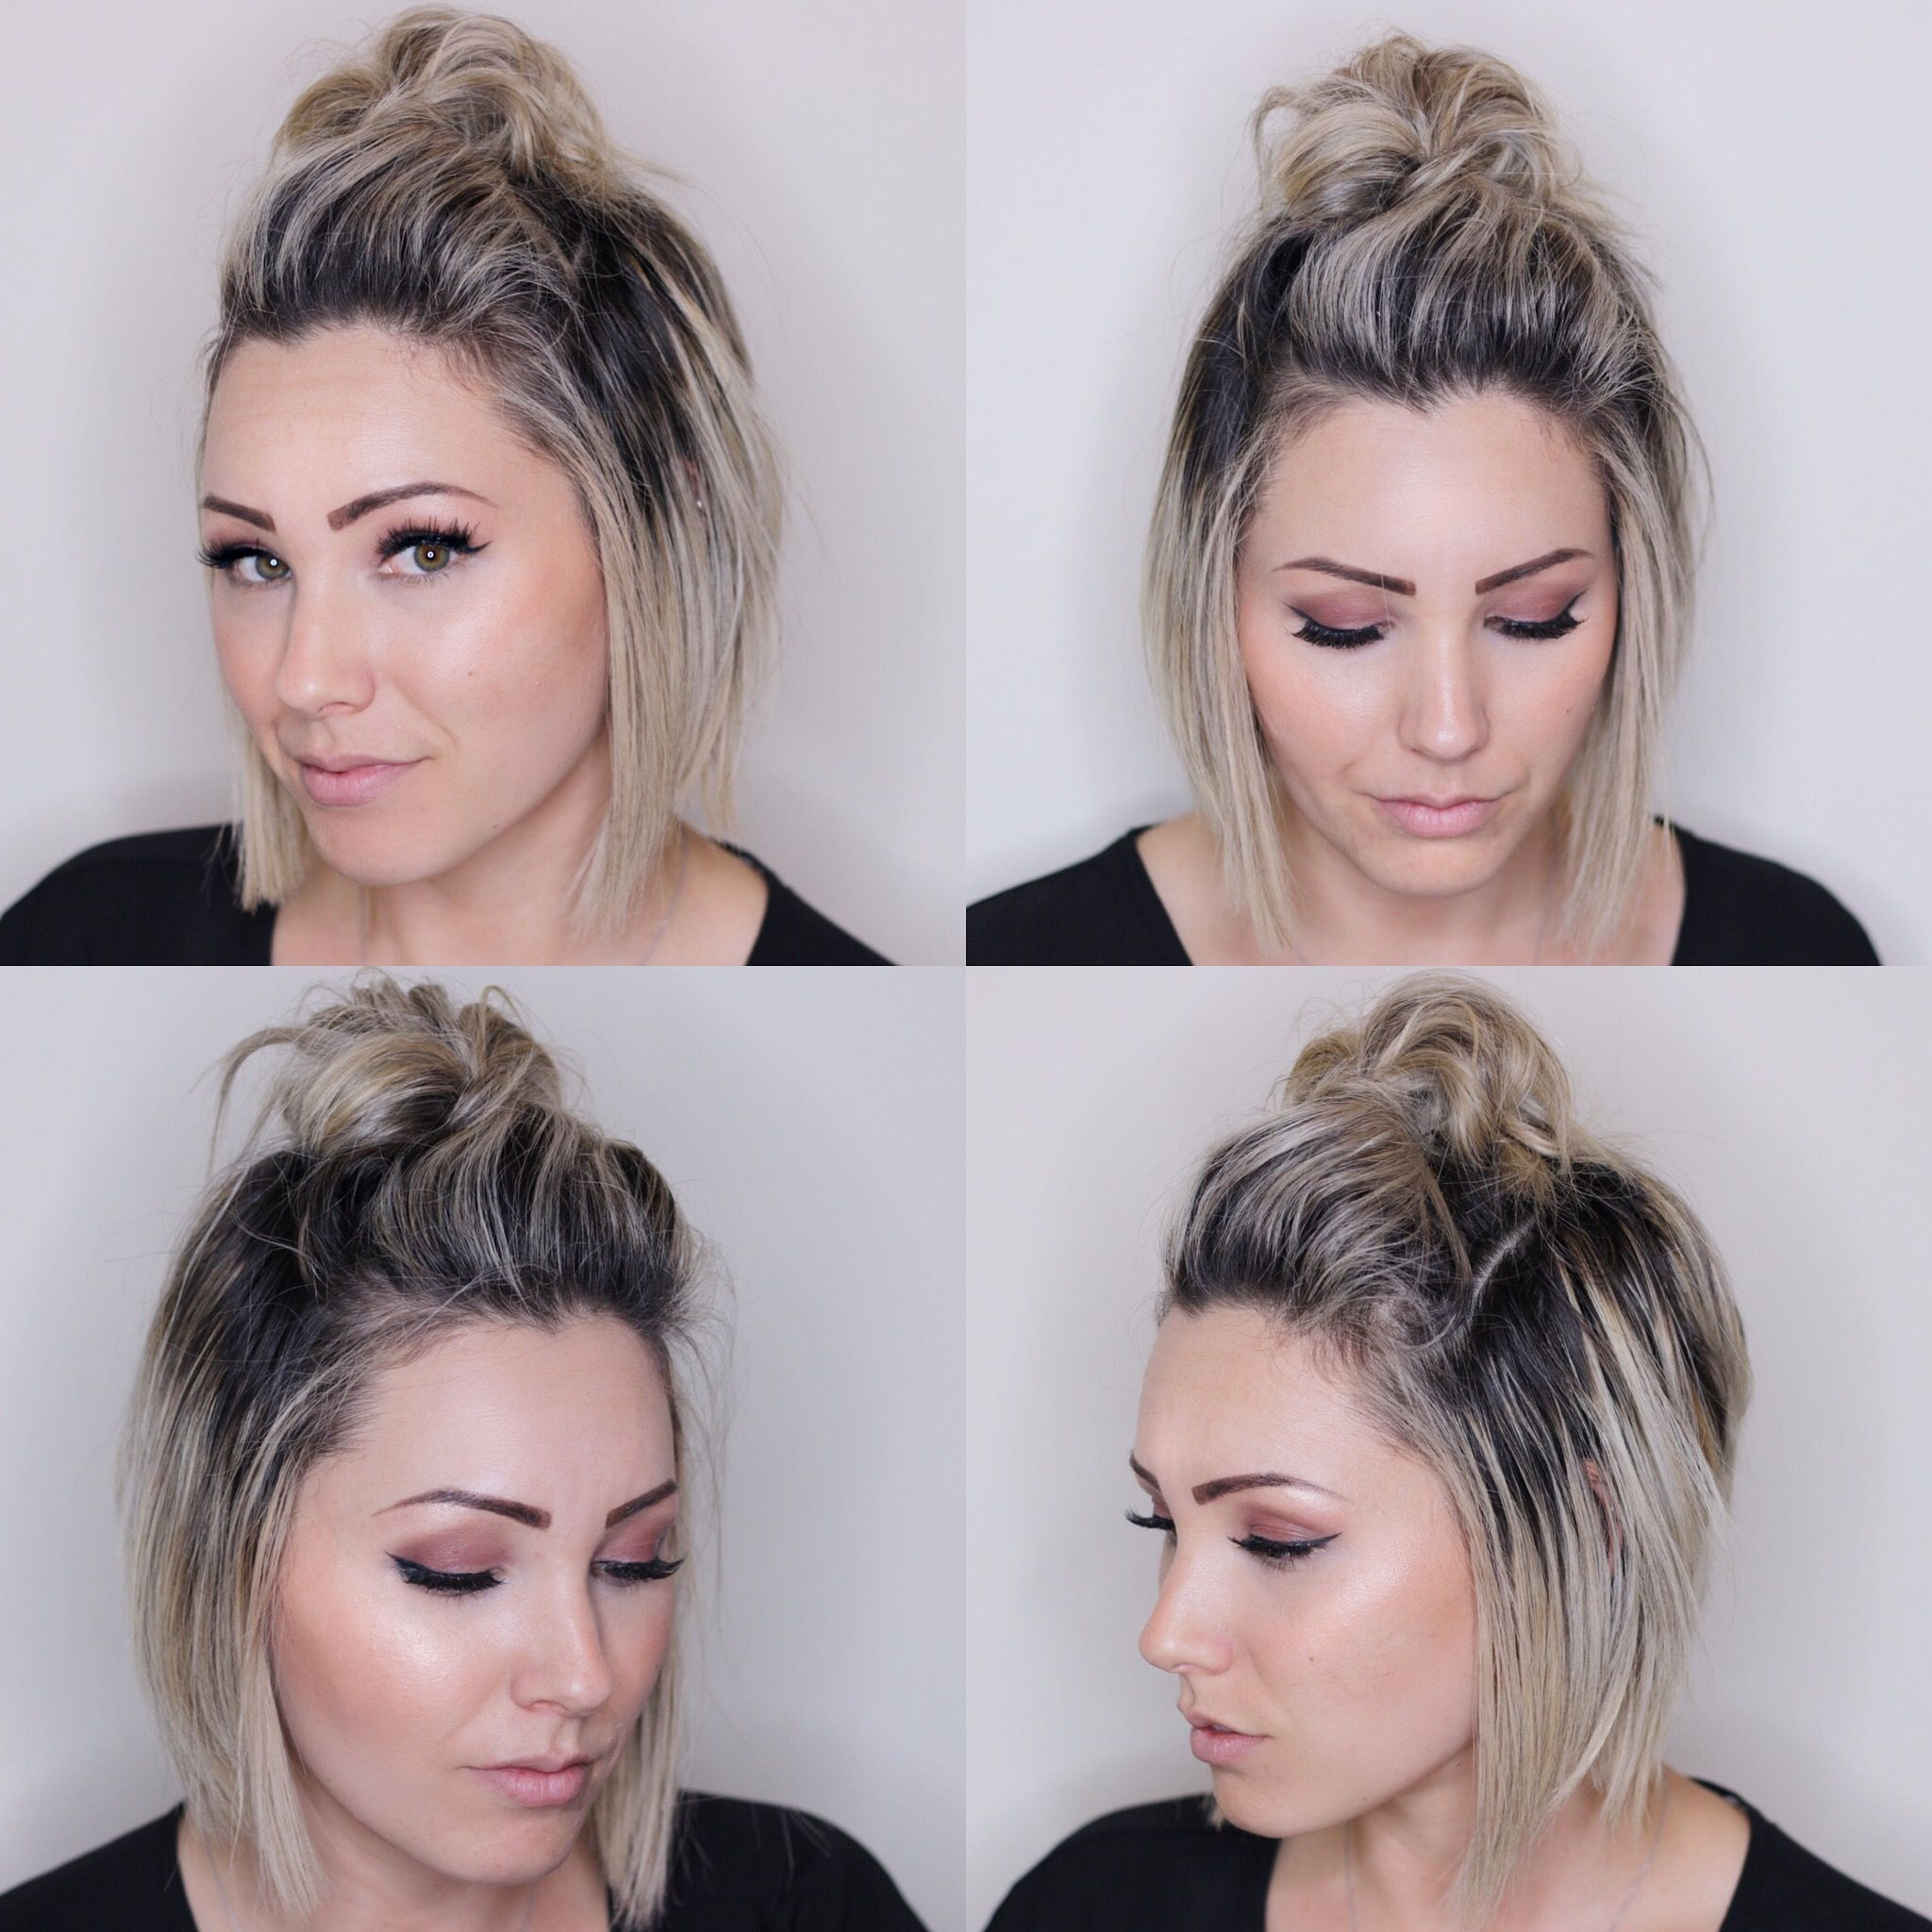 top knot for short hair. short hairstyle. soft bob haircut | ||women